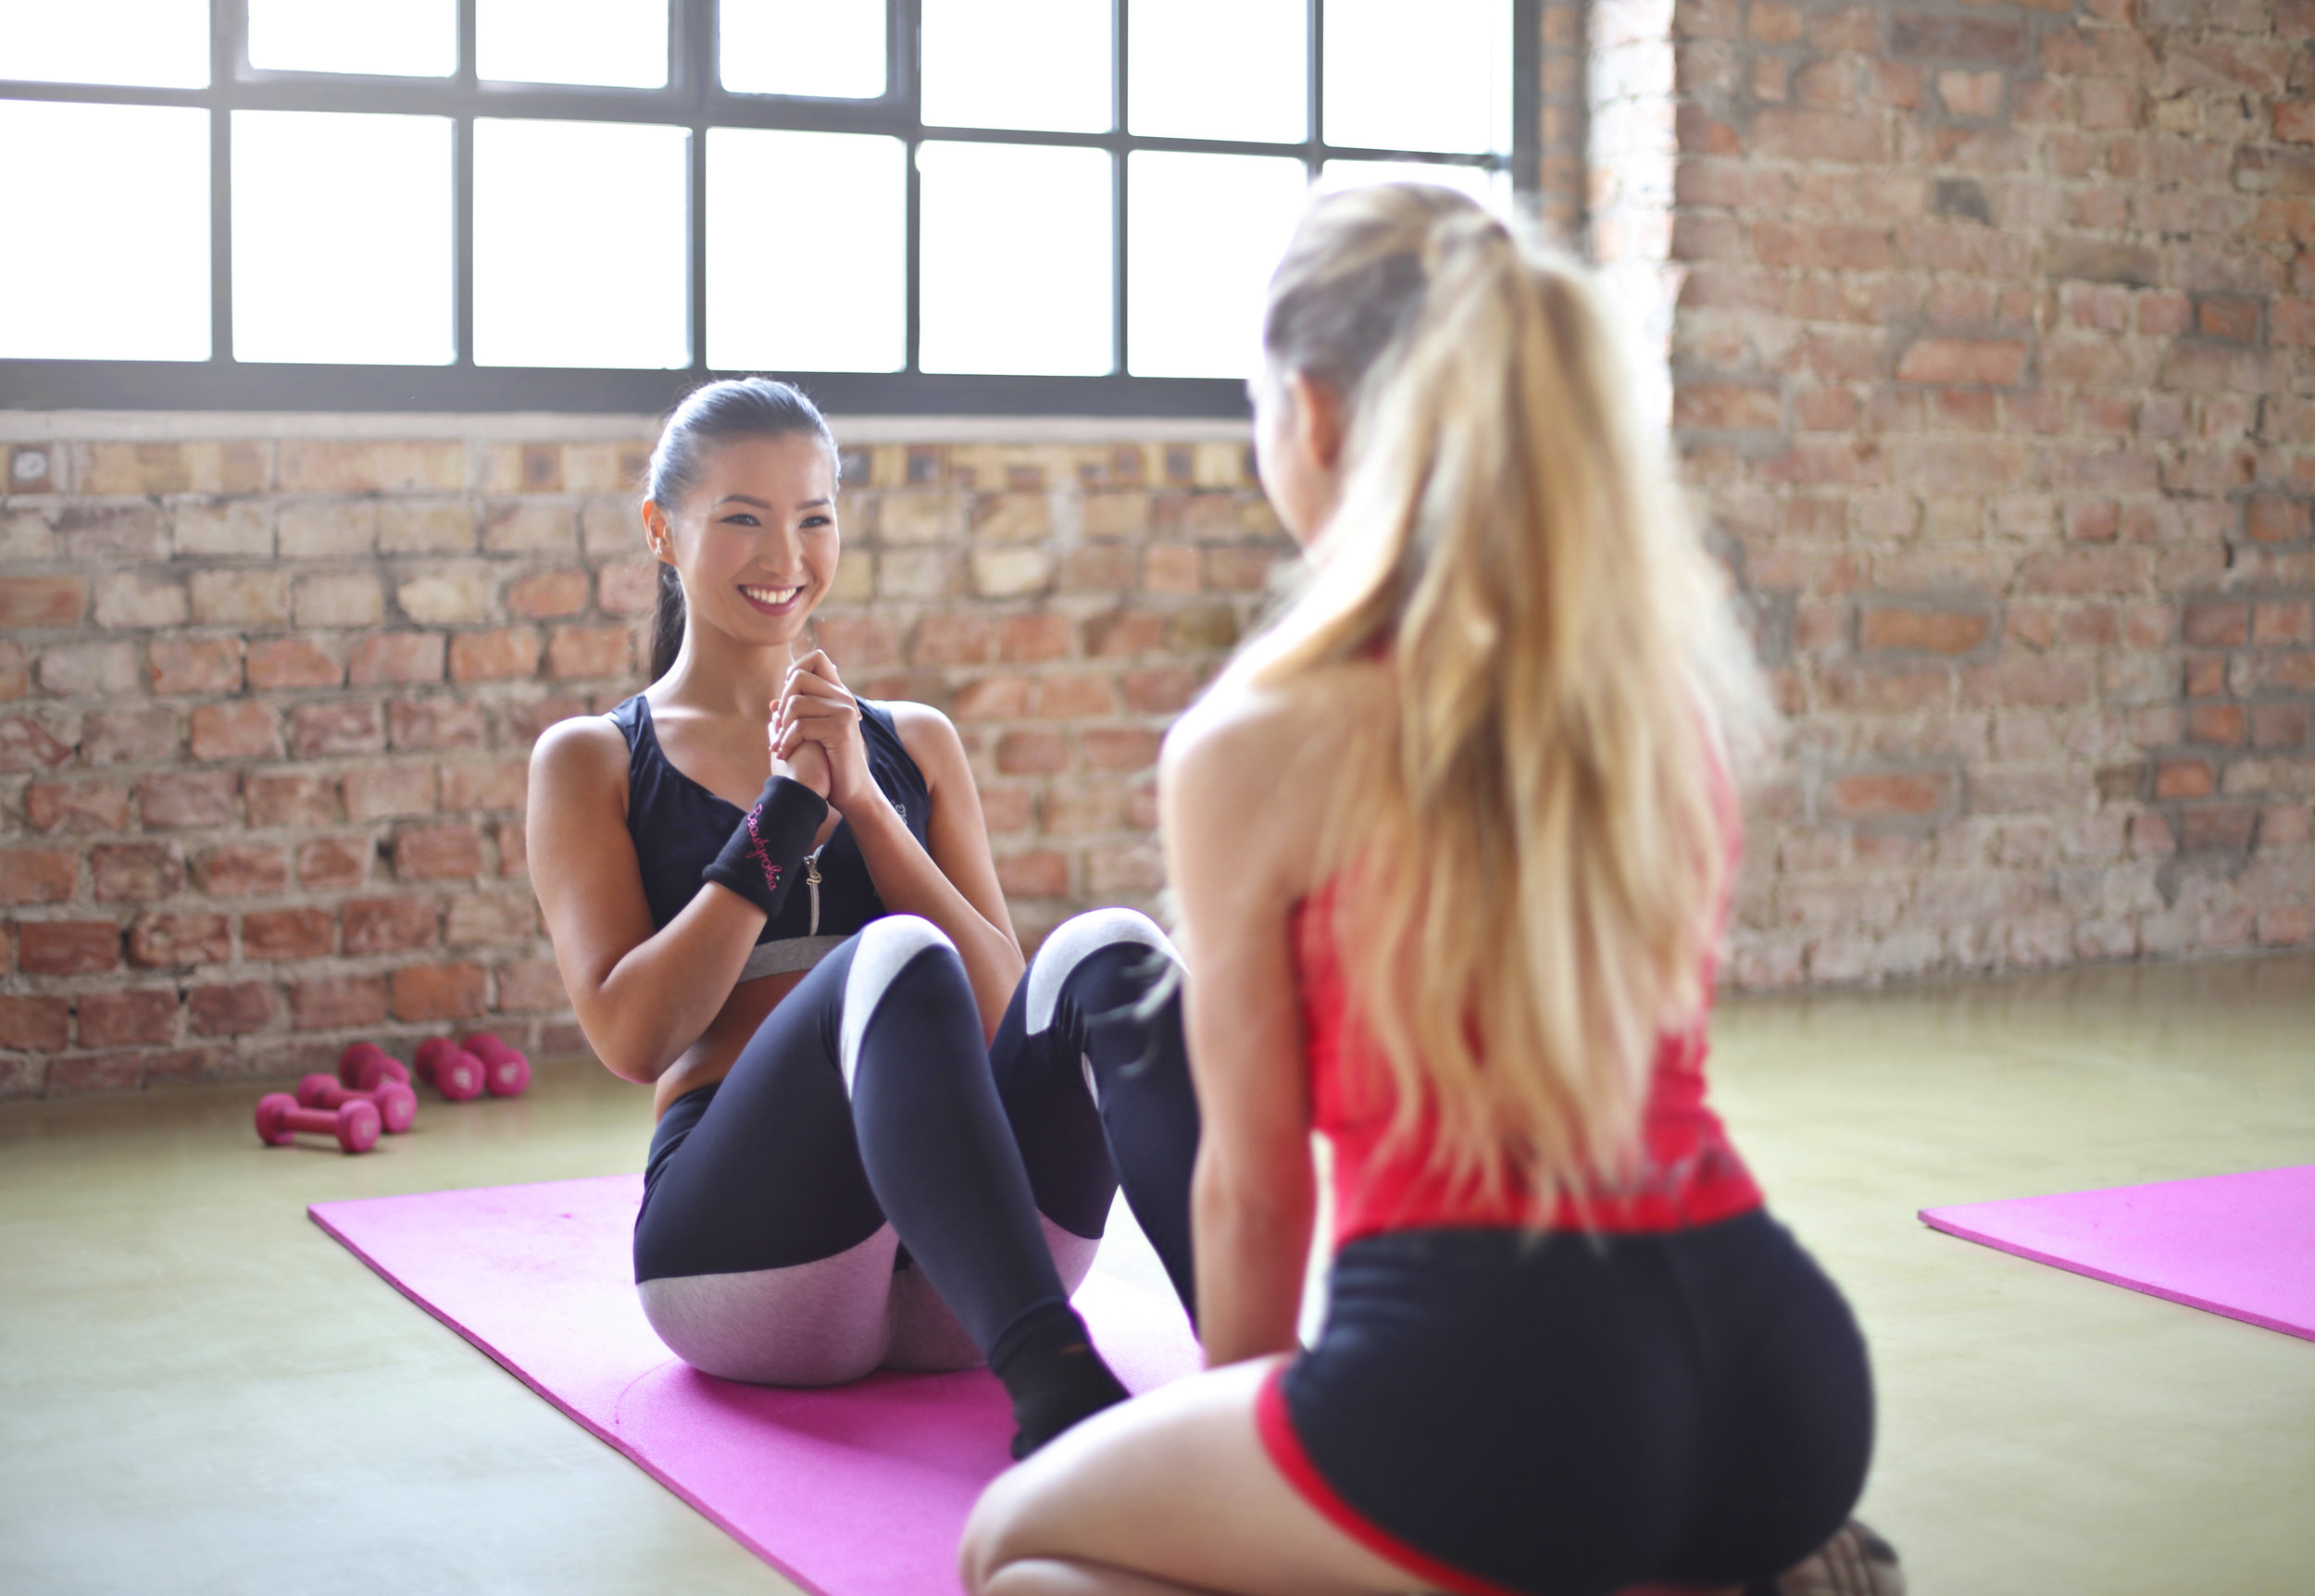 Our Classes - At Zen, we pride ourselves in the vast variety of classes we offer. We offer over 30 classes each week ranging from Yoga to Barre to Zumba there's a class for everyone!